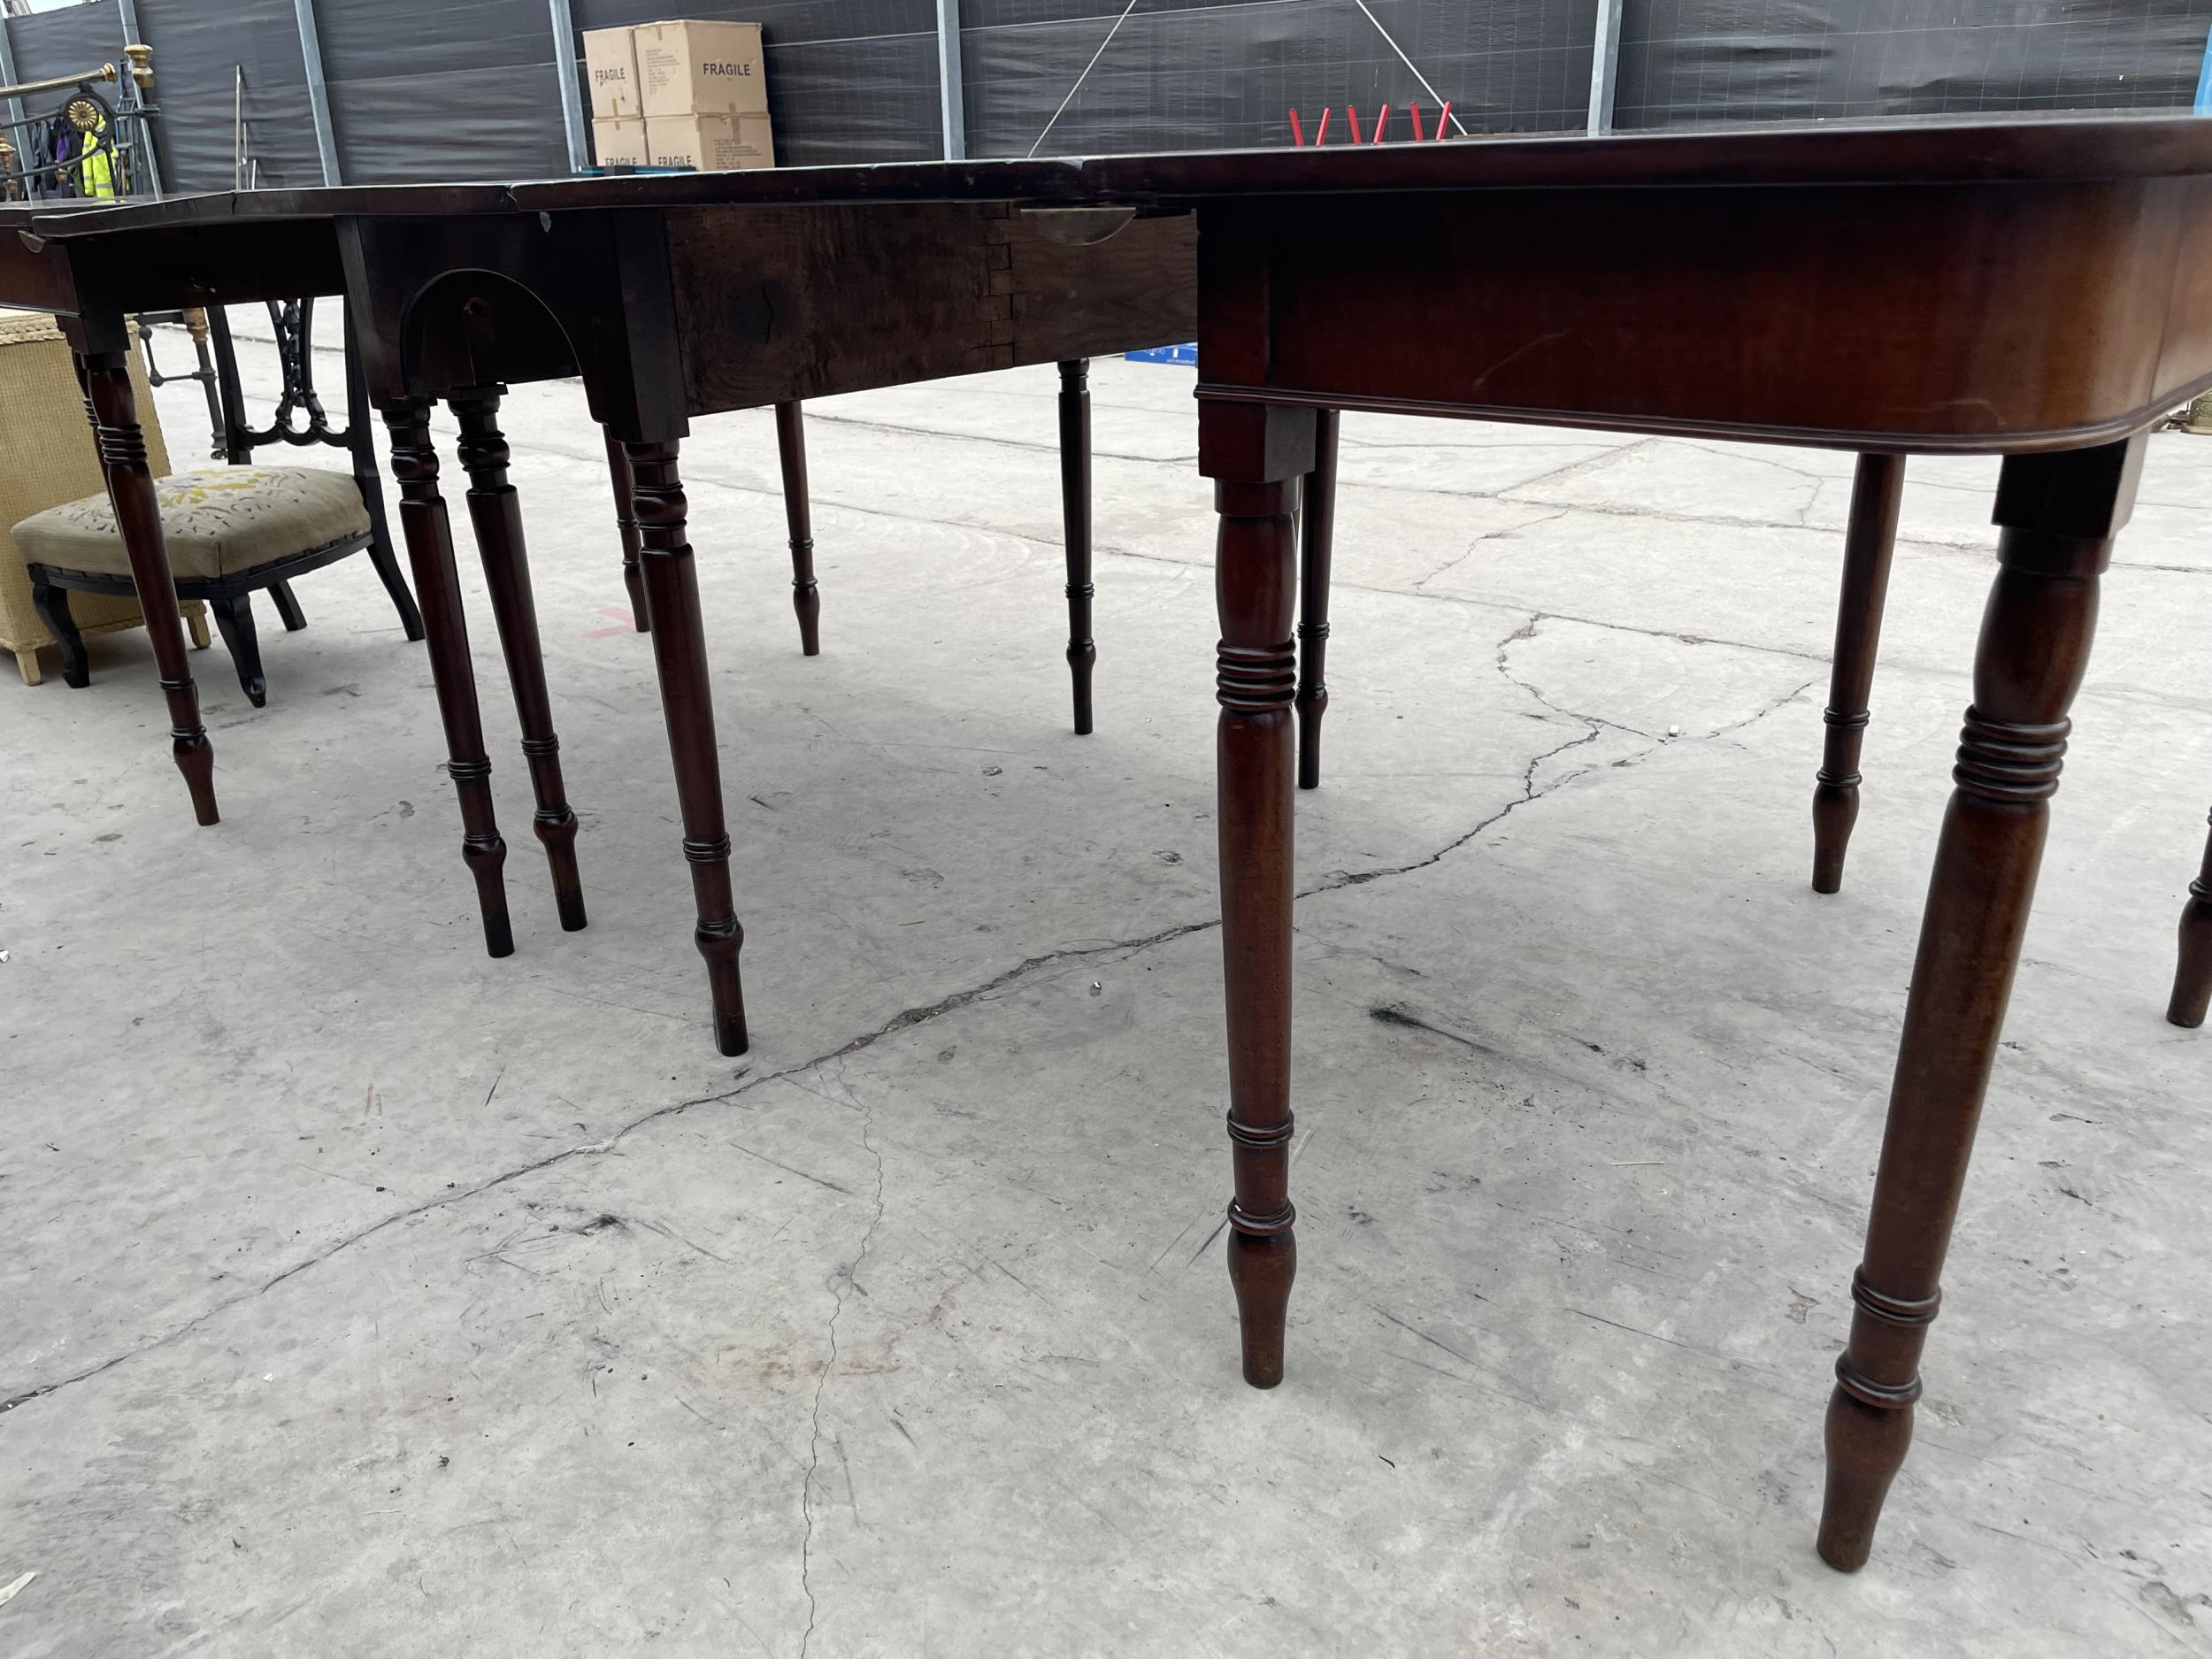 """A 19TH CENTURY MAHOGANY D-END DINING TABLE ON TURNED LEGS 101"""" X 44"""" FULLY EXTENDED - Image 2 of 3"""